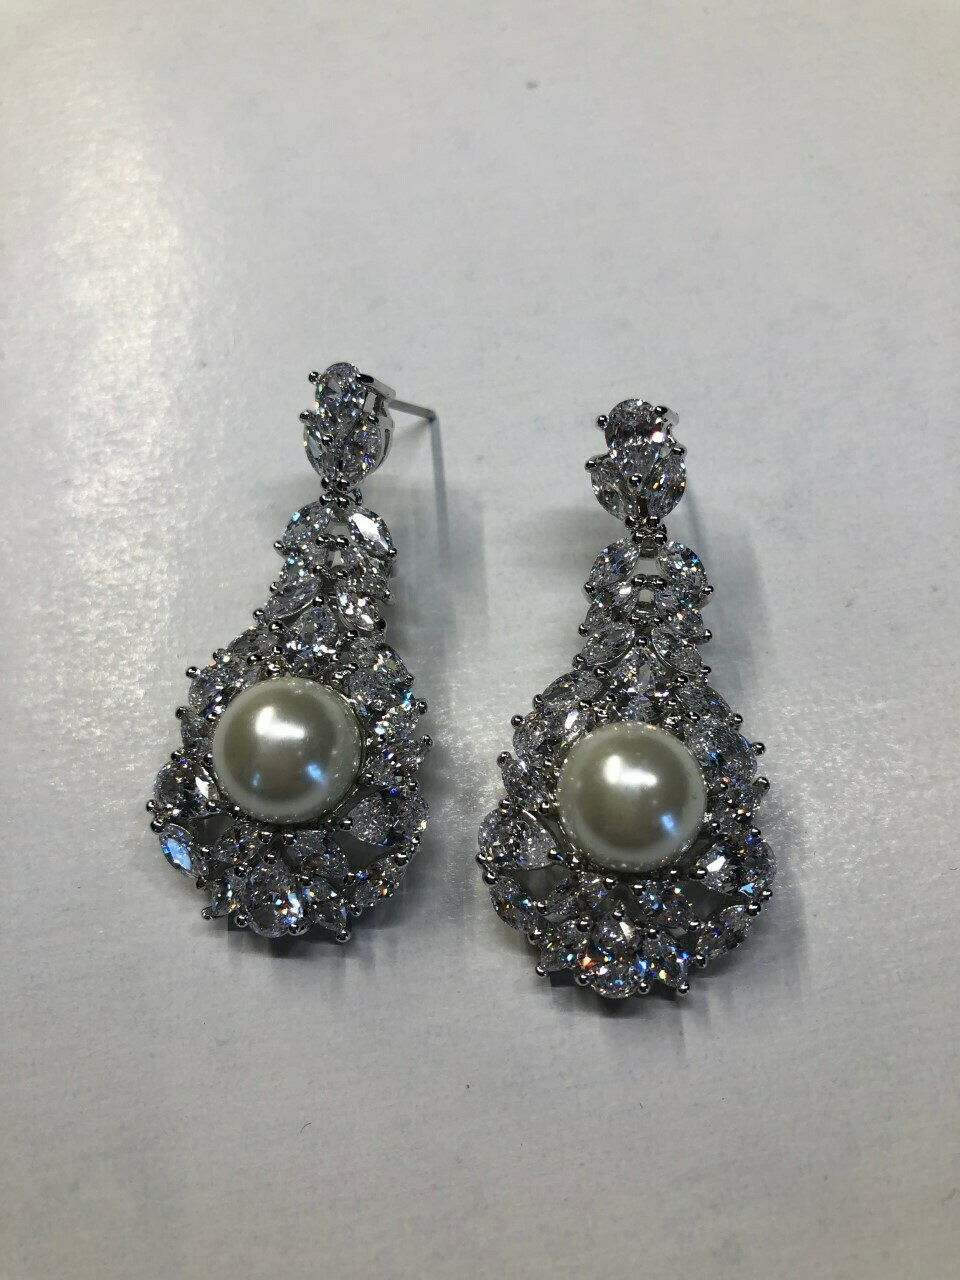 Spectacular Margaret Pearl CZ Earrings